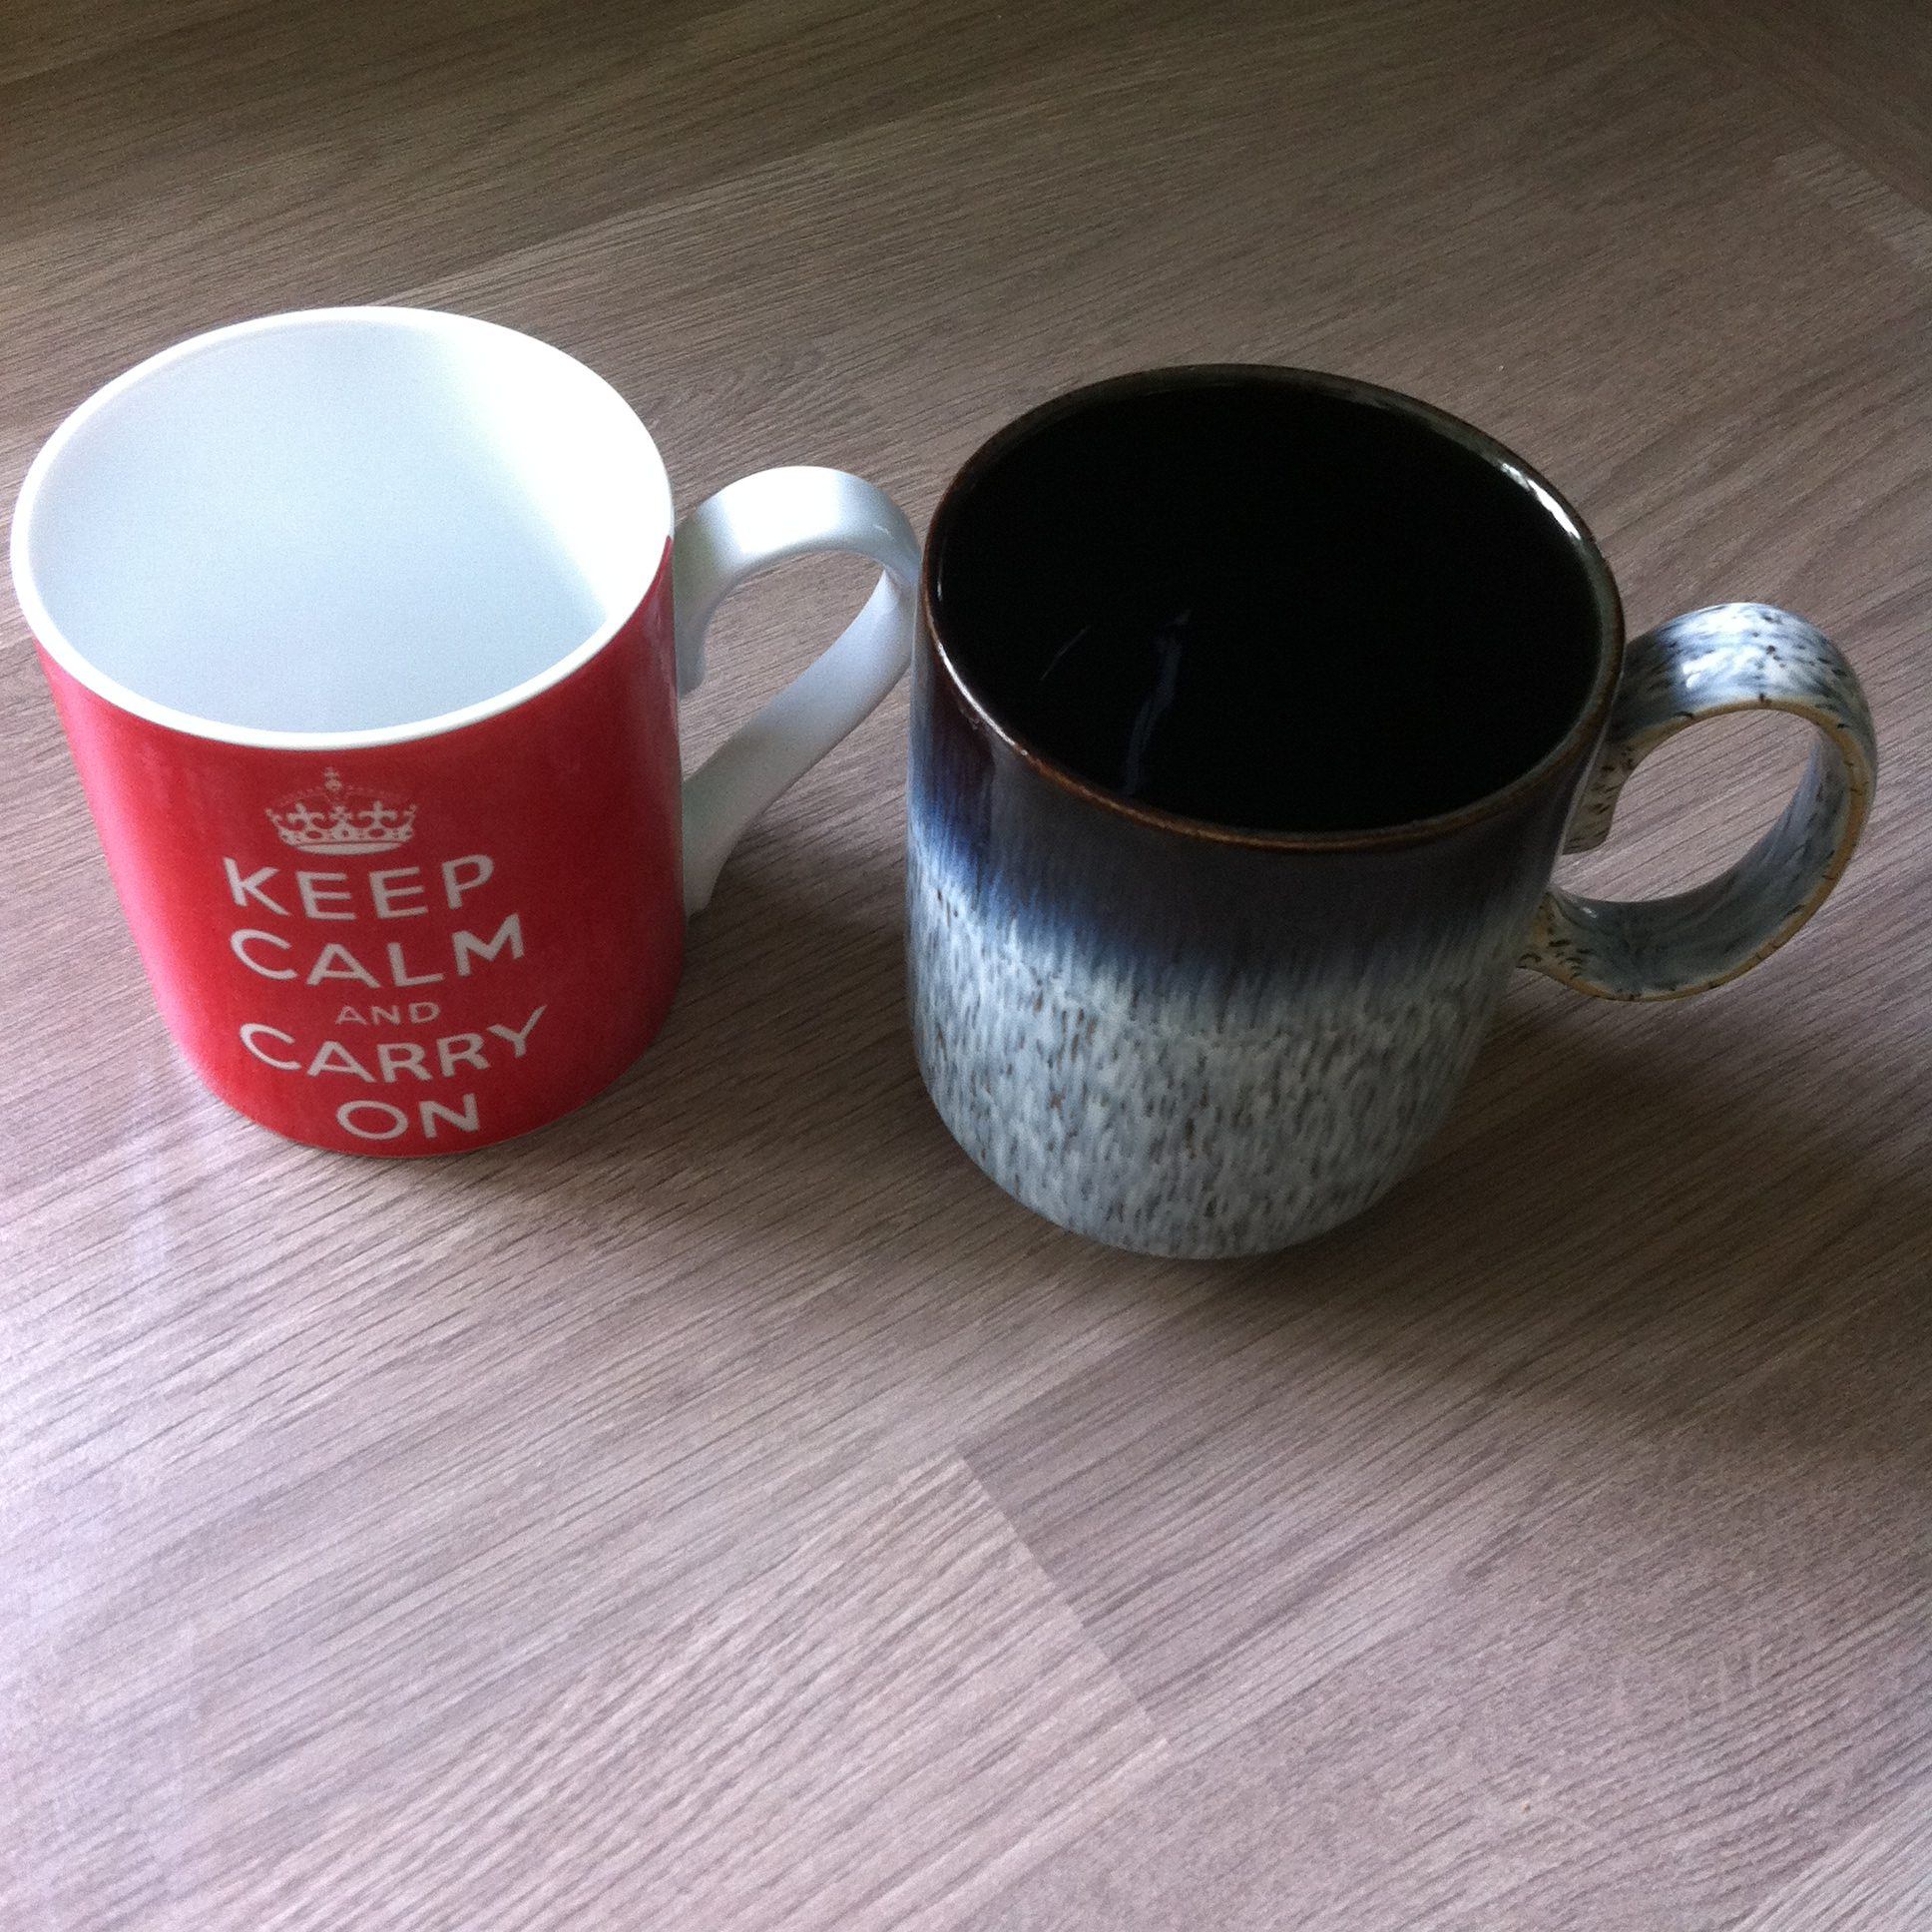 photo of two mugs